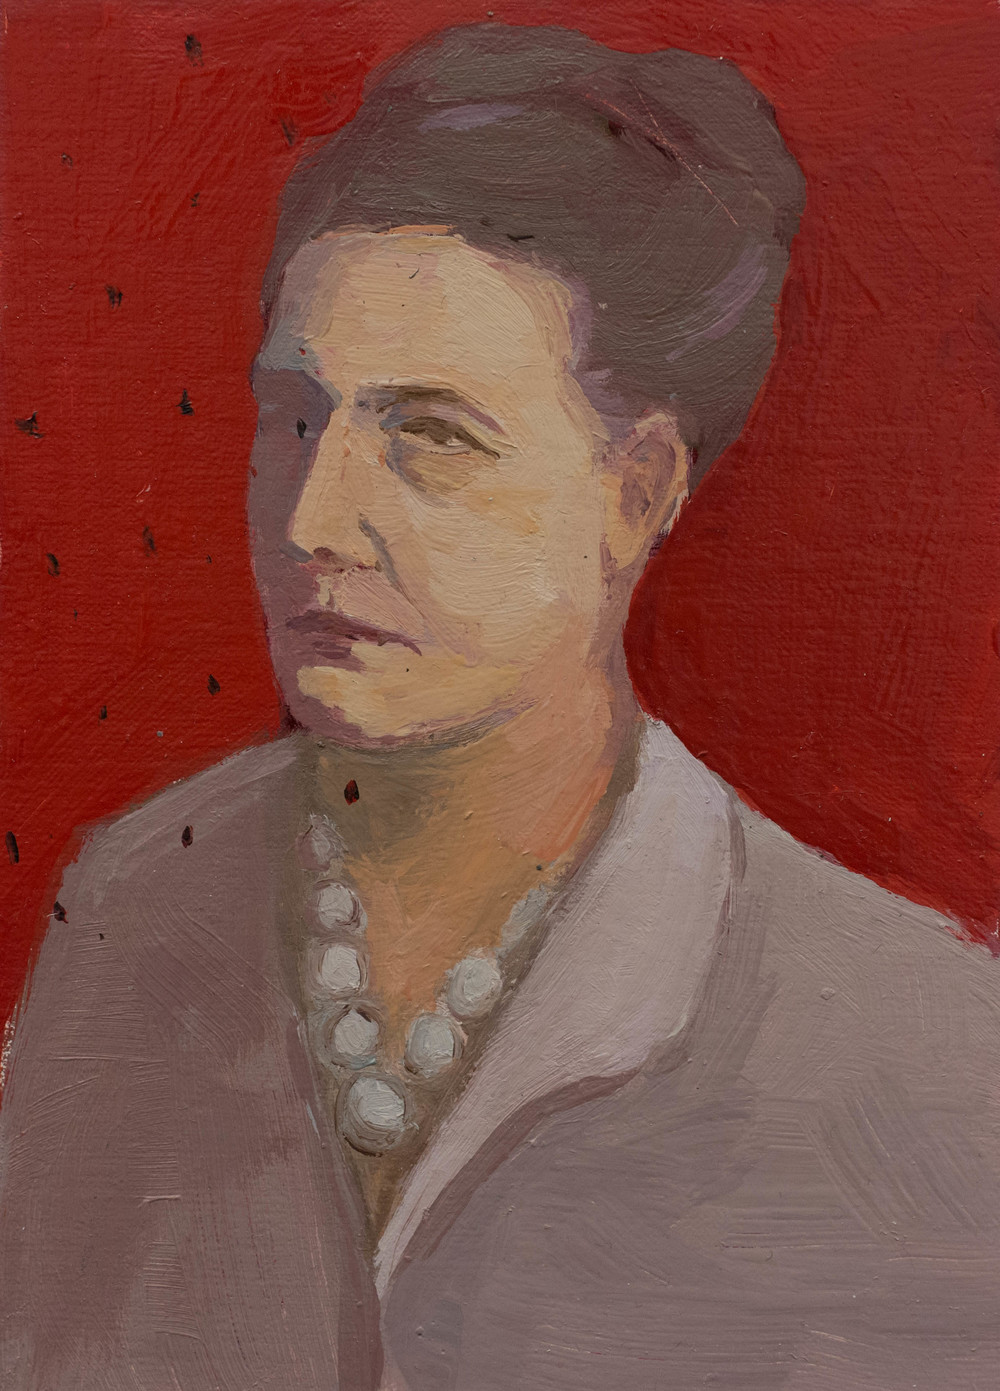 Portrait of Simon De Beauvoir  5 x 7 in  oil on panel